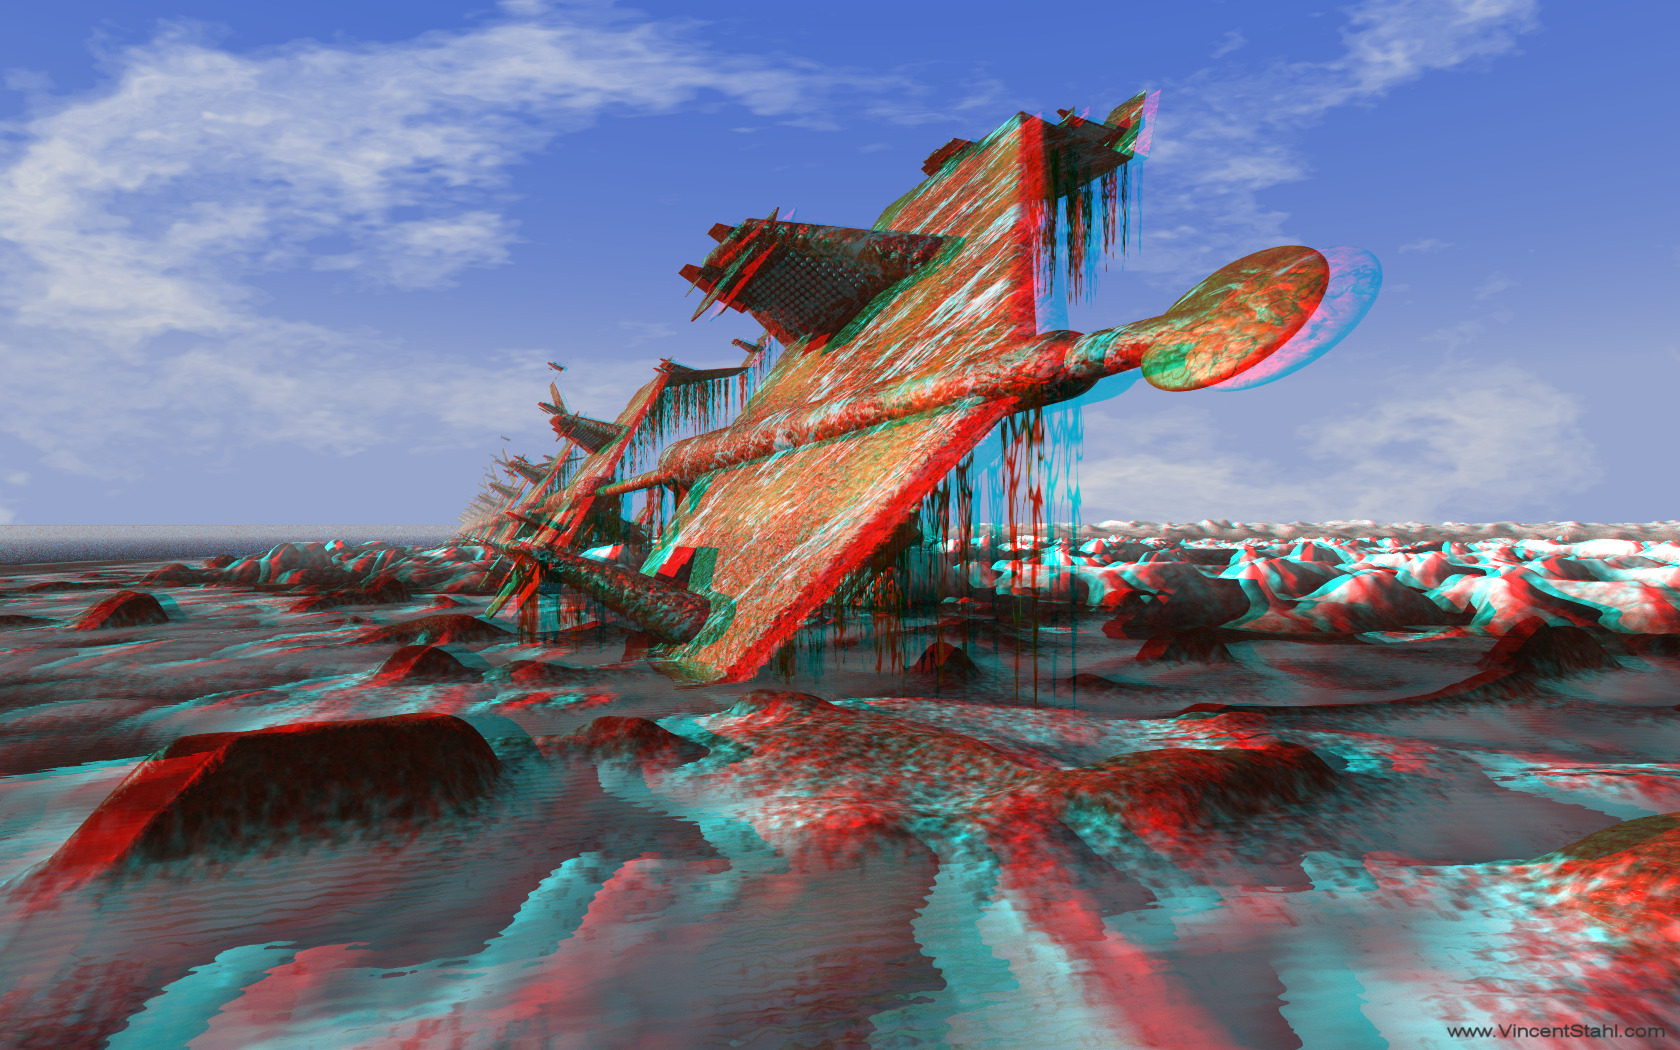 A Frozen Dream - 3D stereo anaglyph color